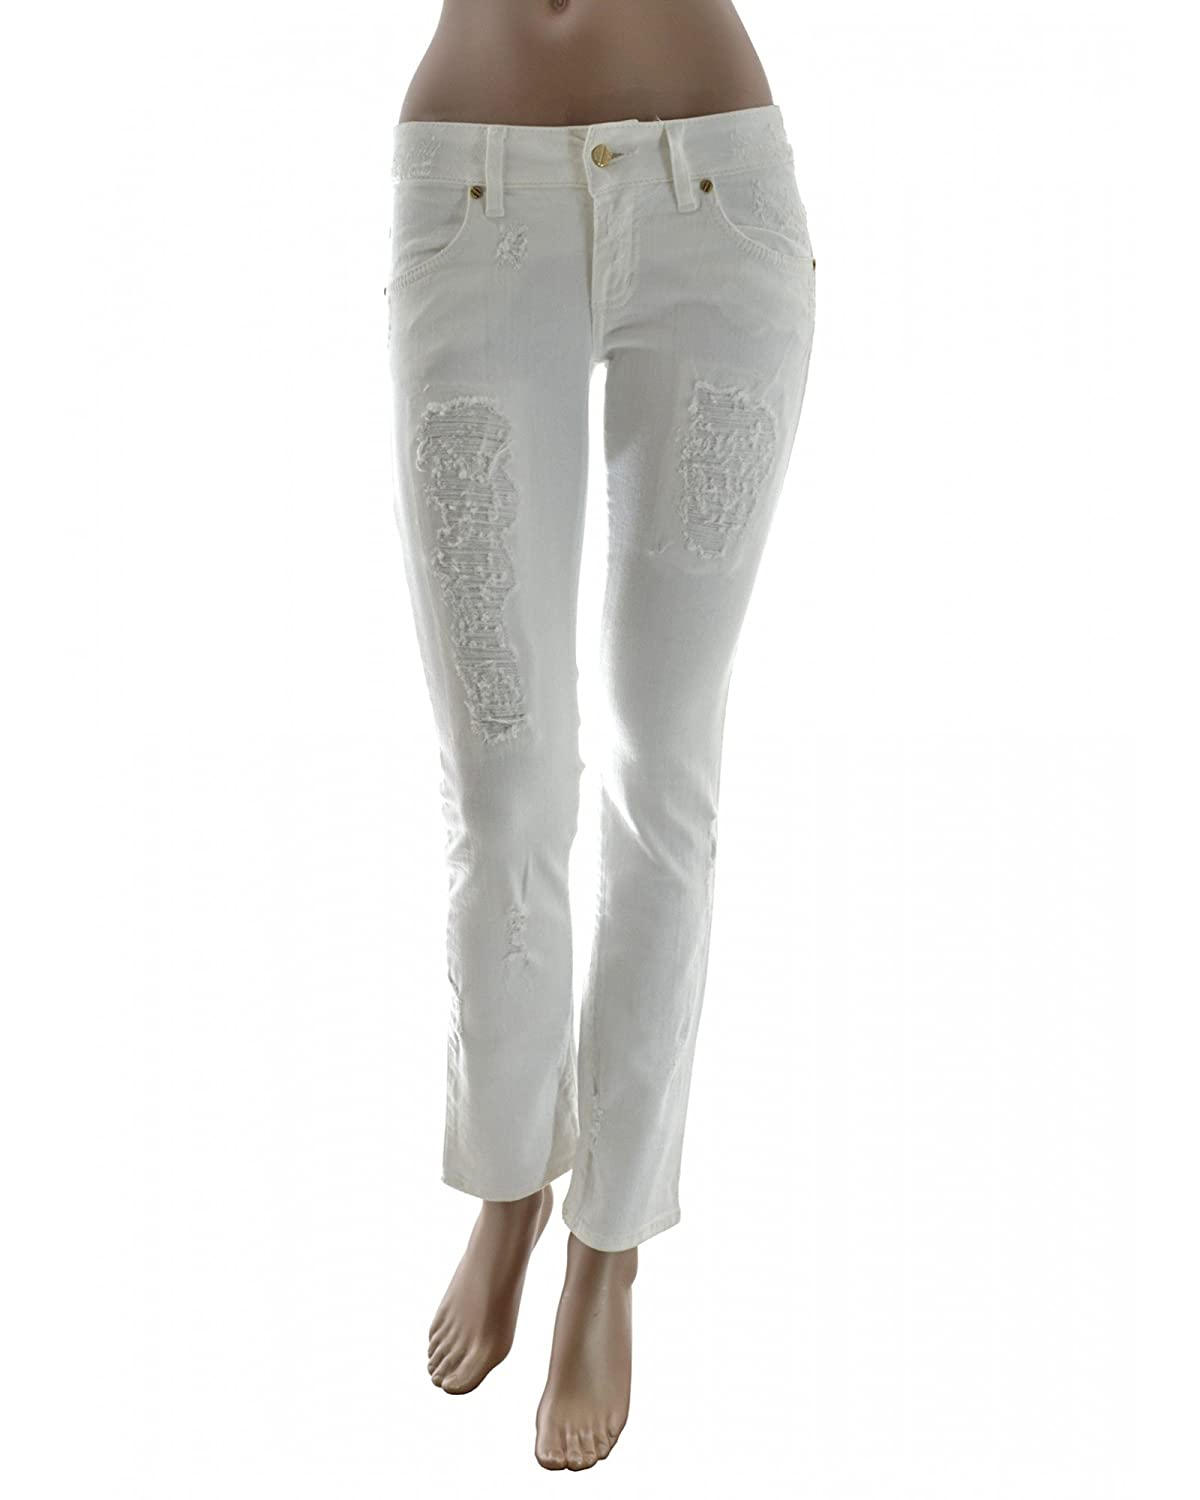 MET jeans donna - effeto vintage con strappi - made in ITALY 30%OFF ... f47ad52b677c